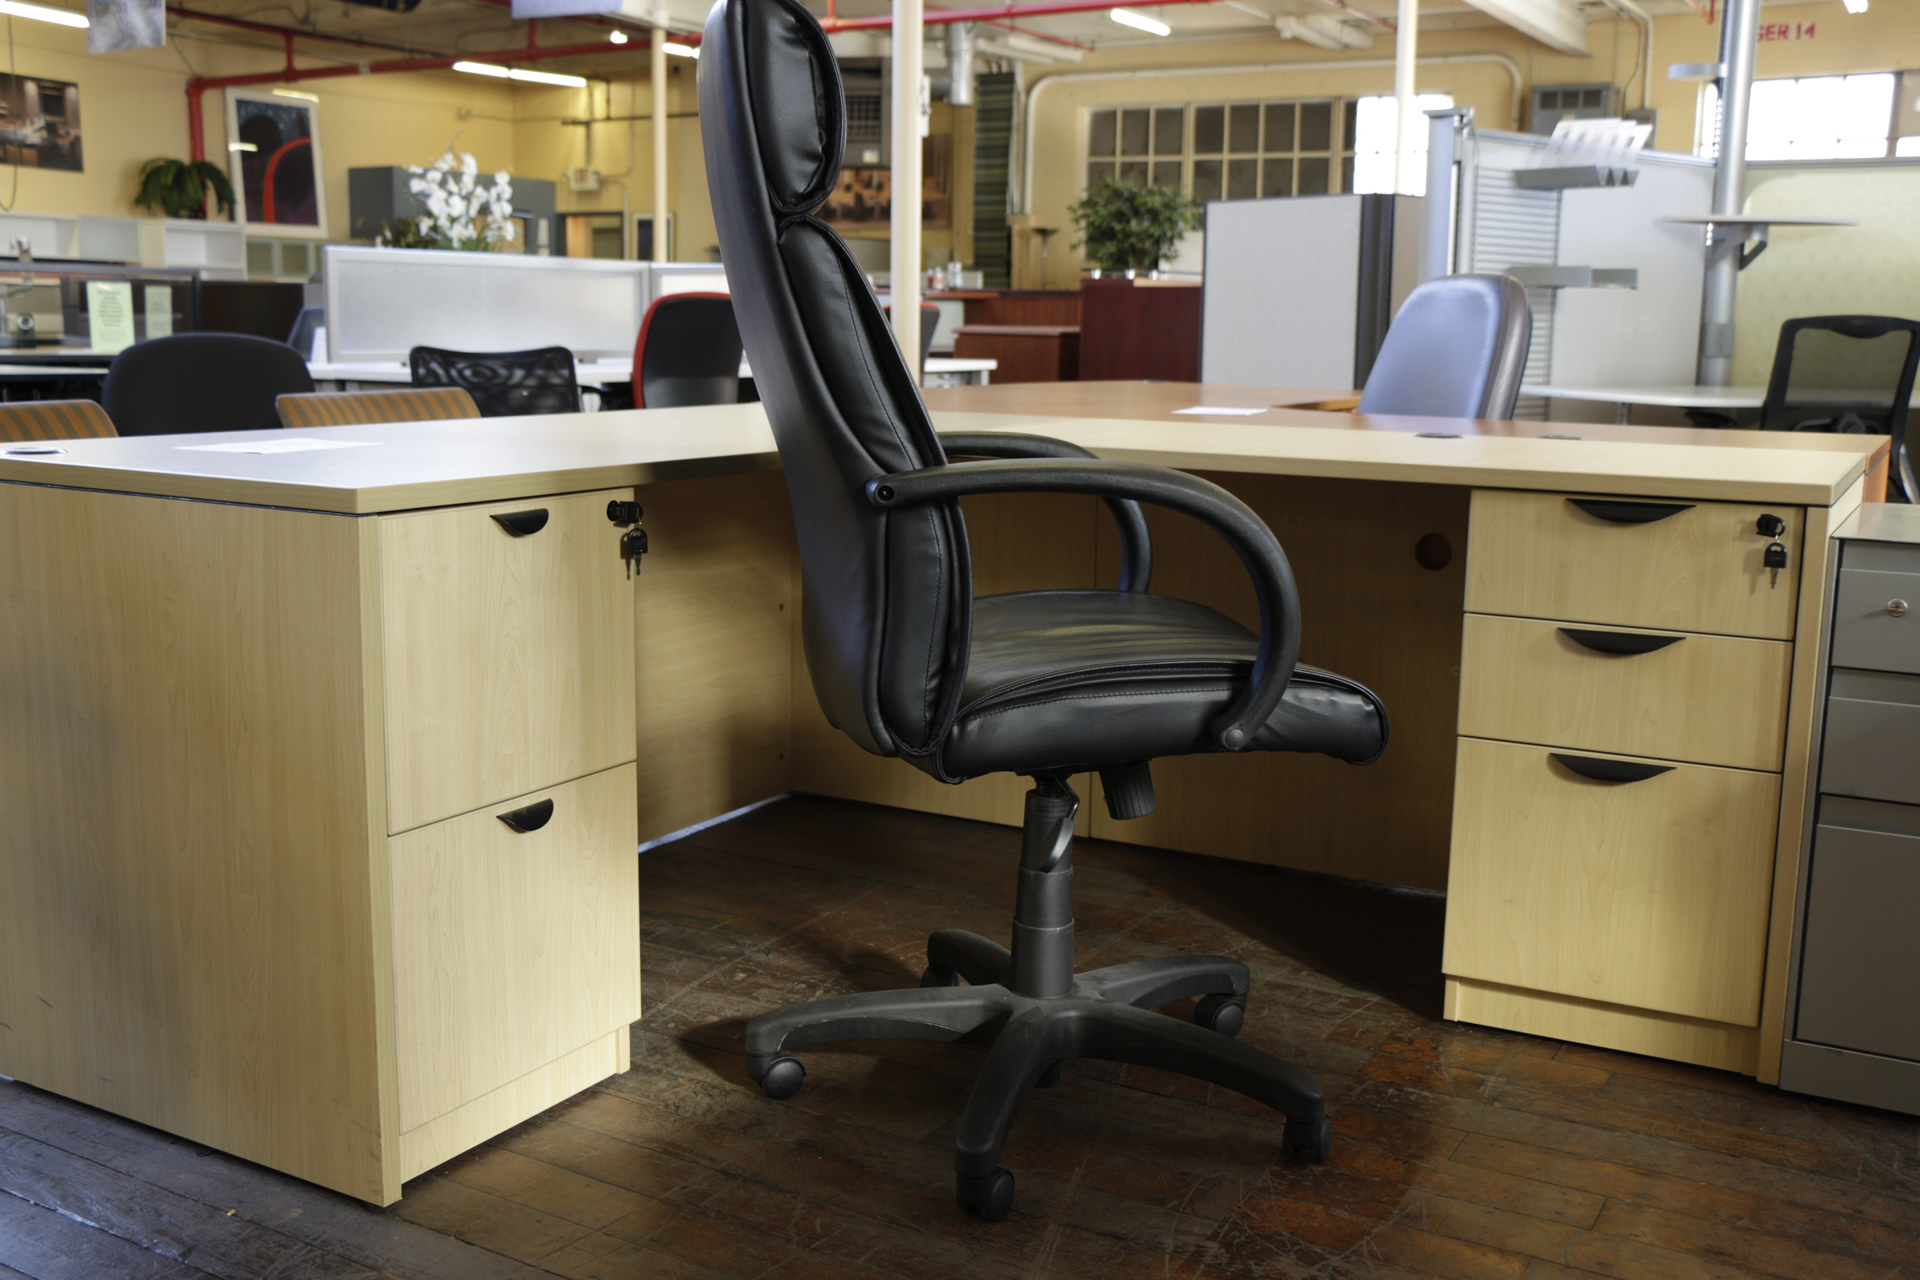 peartreeofficefurniture_peartreeofficefurniture_mg_18321.jpg